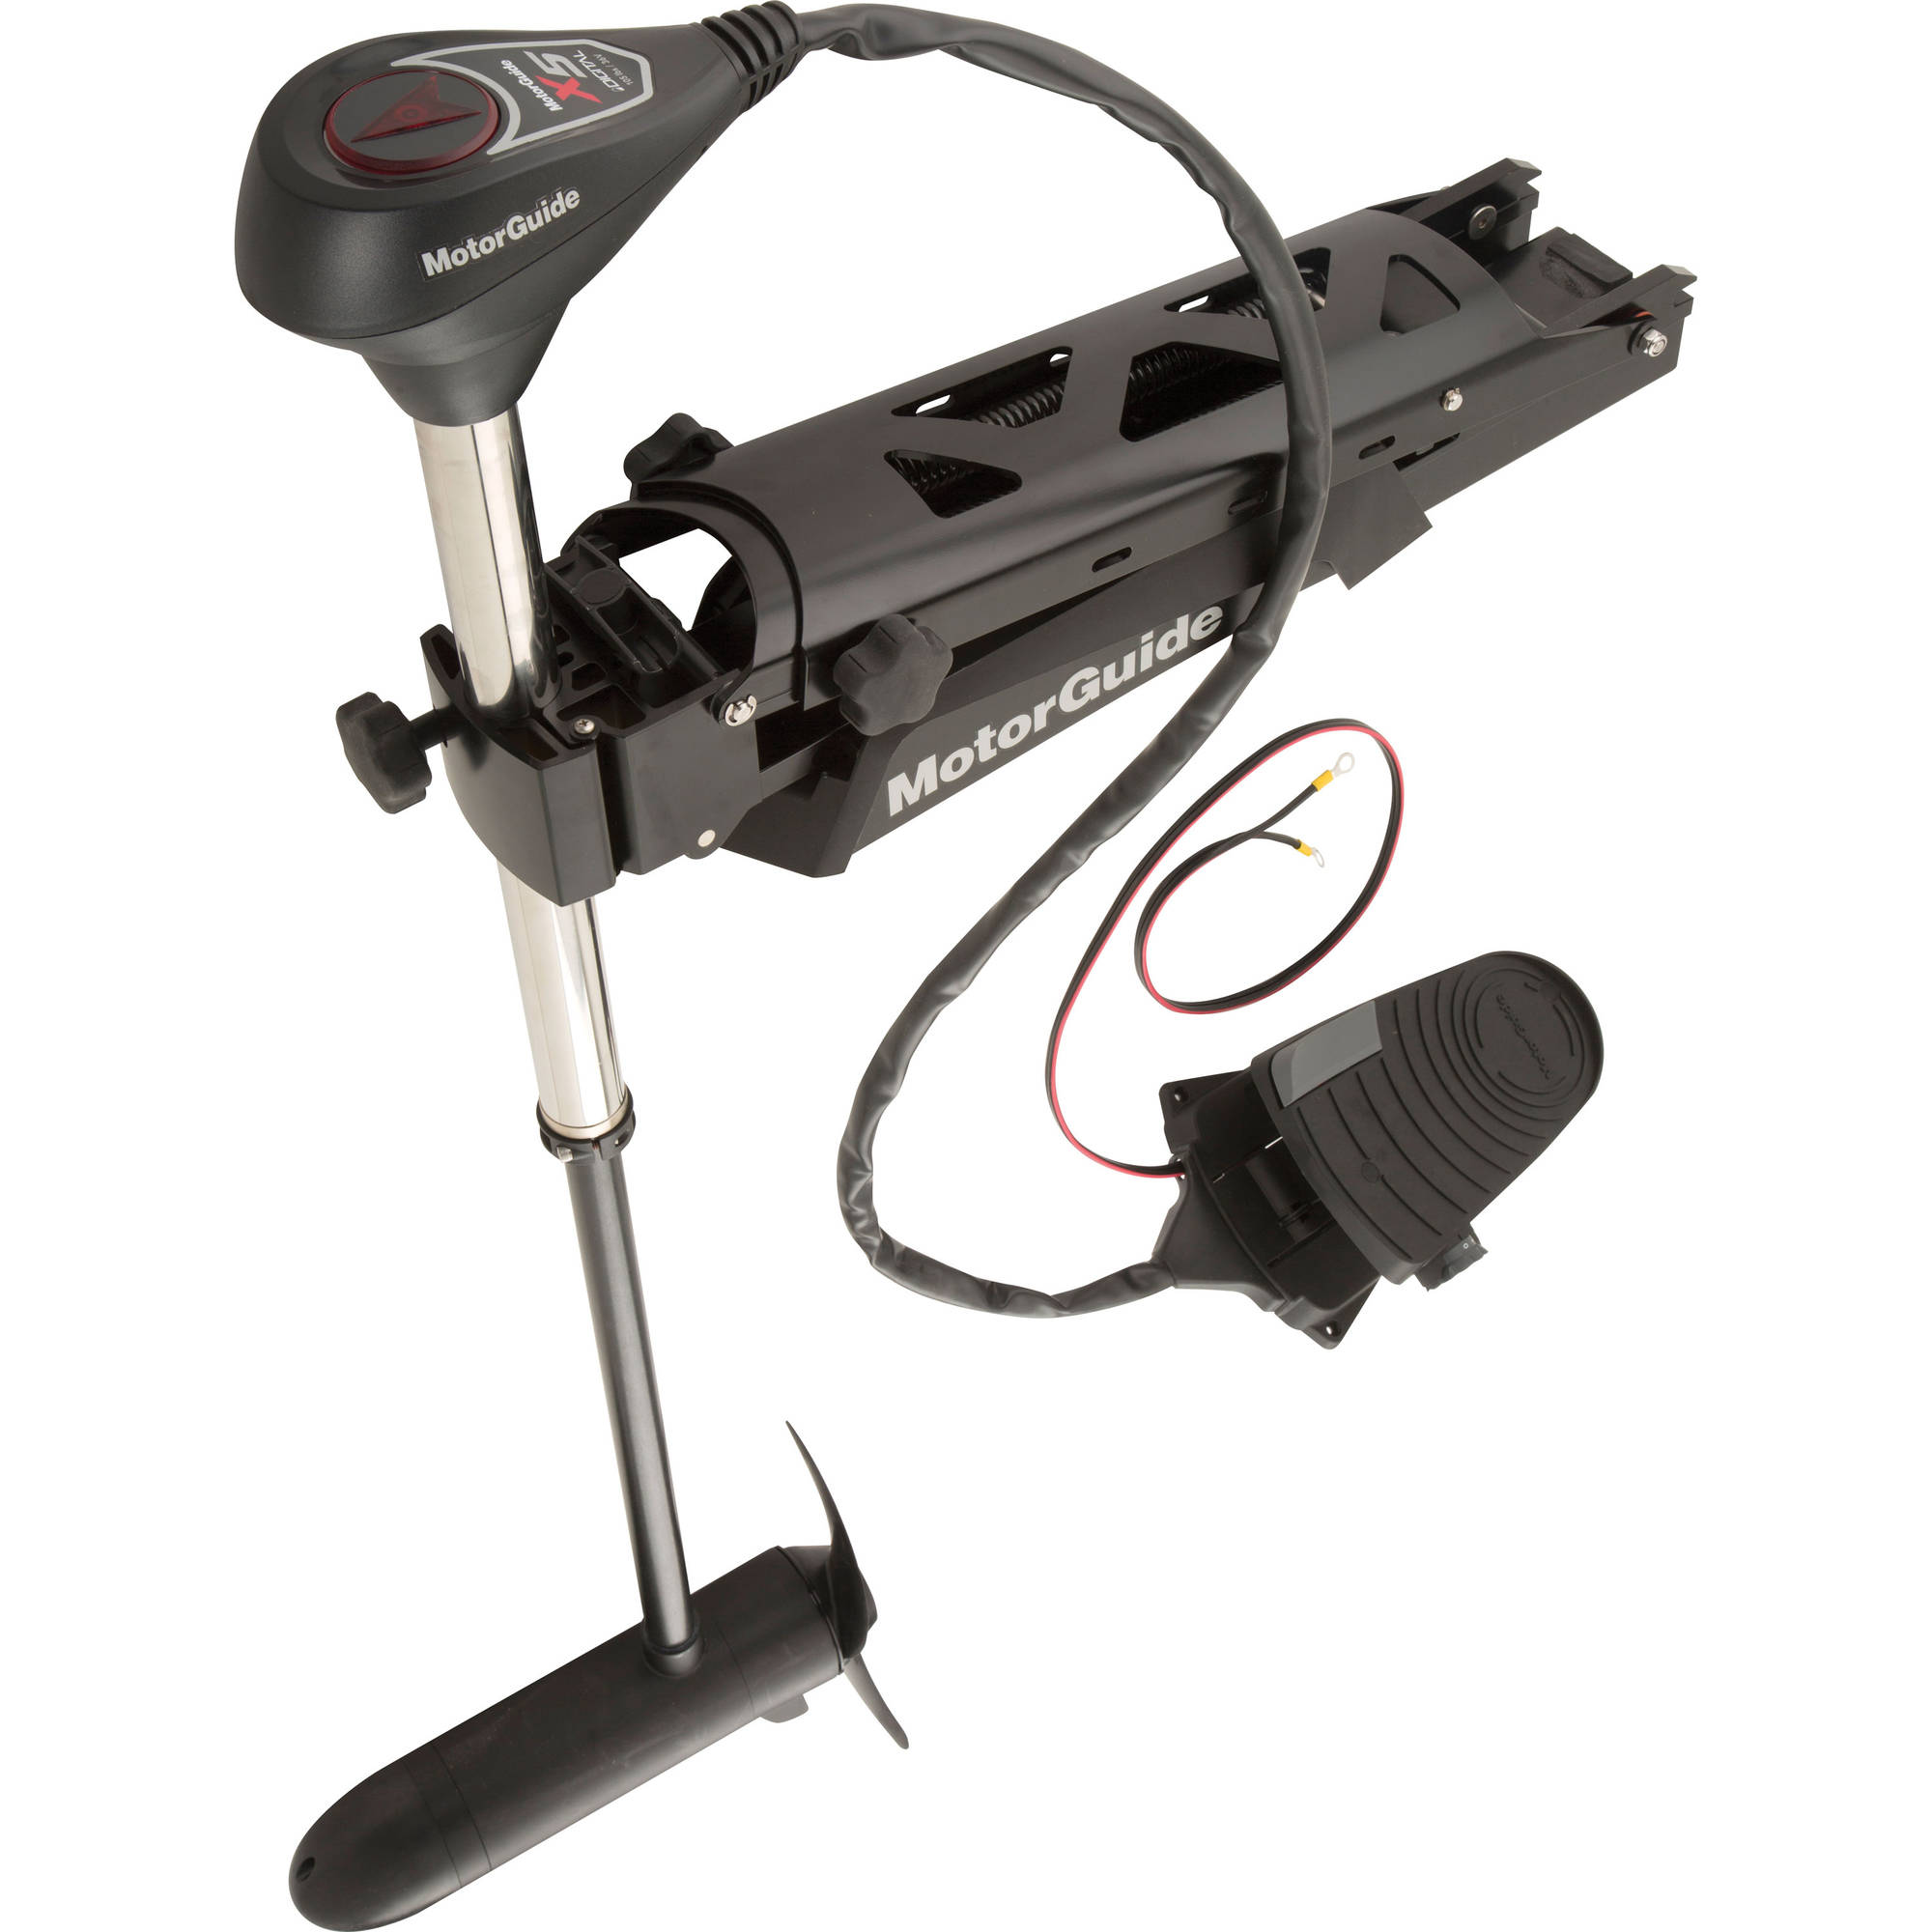 MotorGuide X5 36V Foot-Control Bow Mount Digital Variable Speed Freshwater Trolling Motor